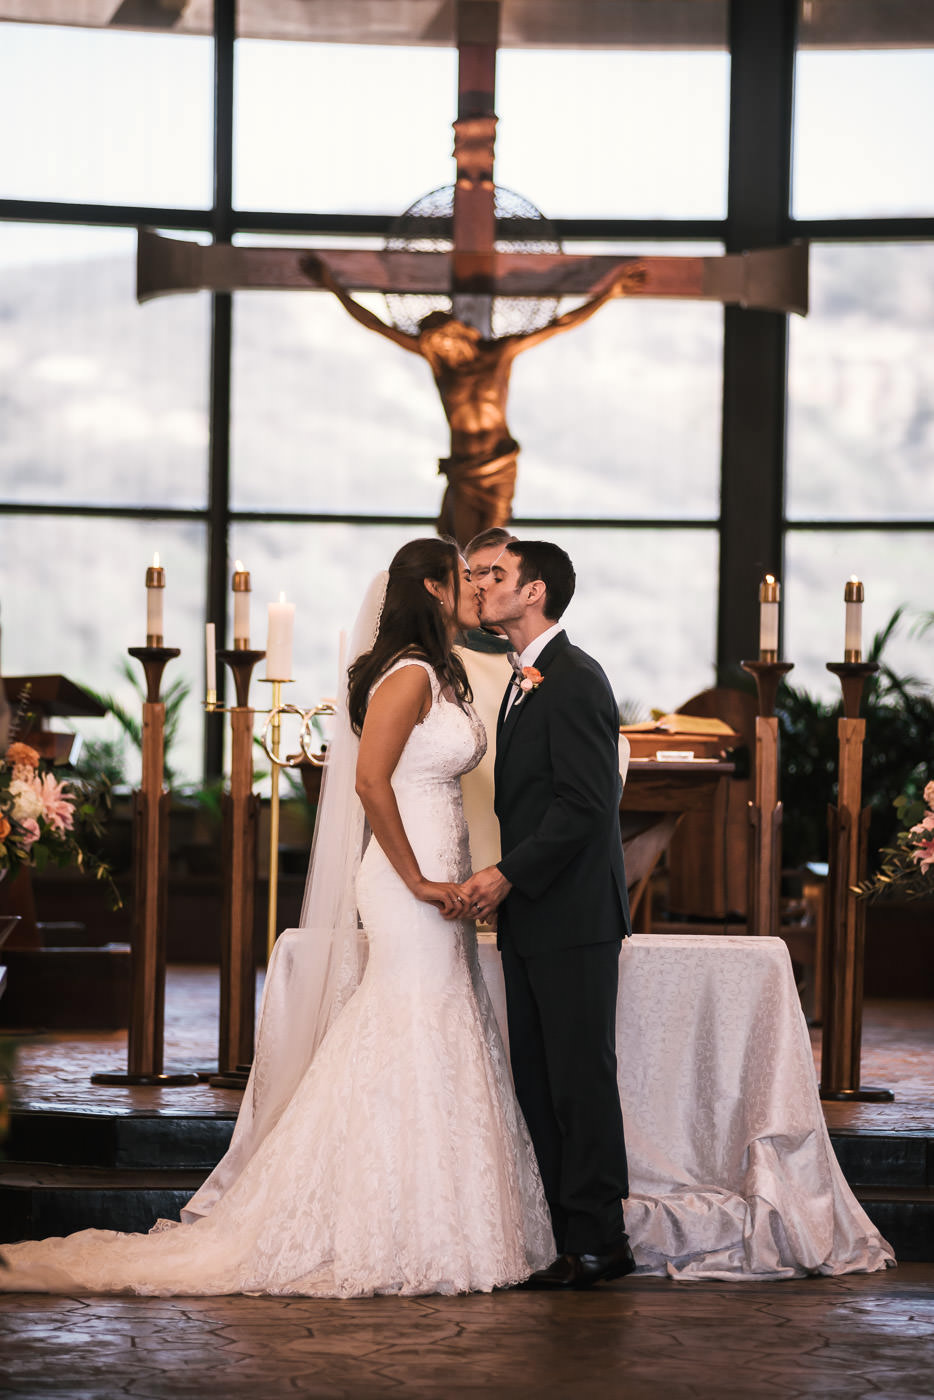 First kiss at this romantic wedding in St Therese Carmel Church.